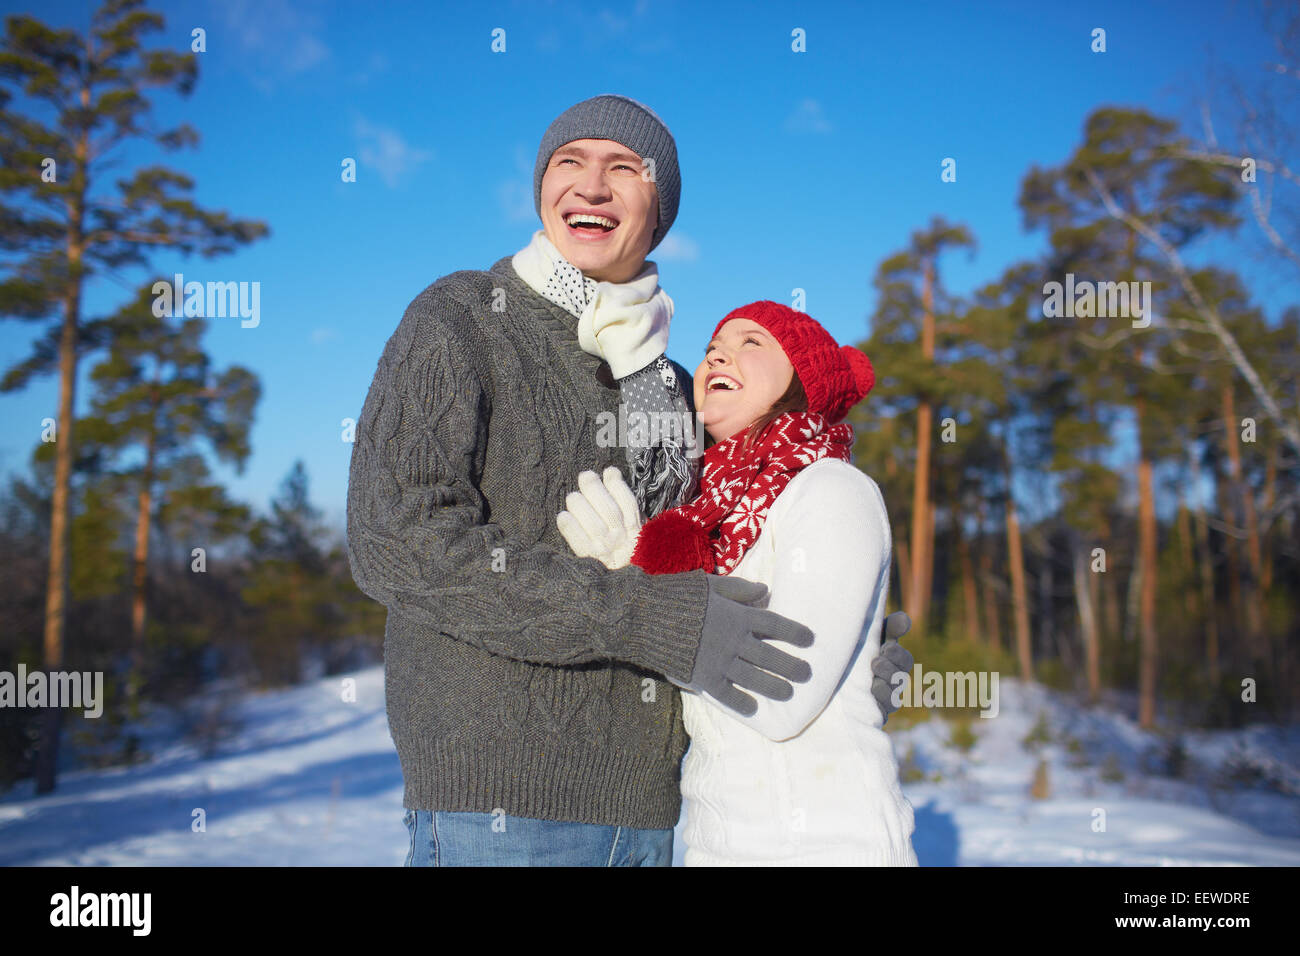 Ecstatic man and woman in knitted winterwear spending leisure in park - Stock Image